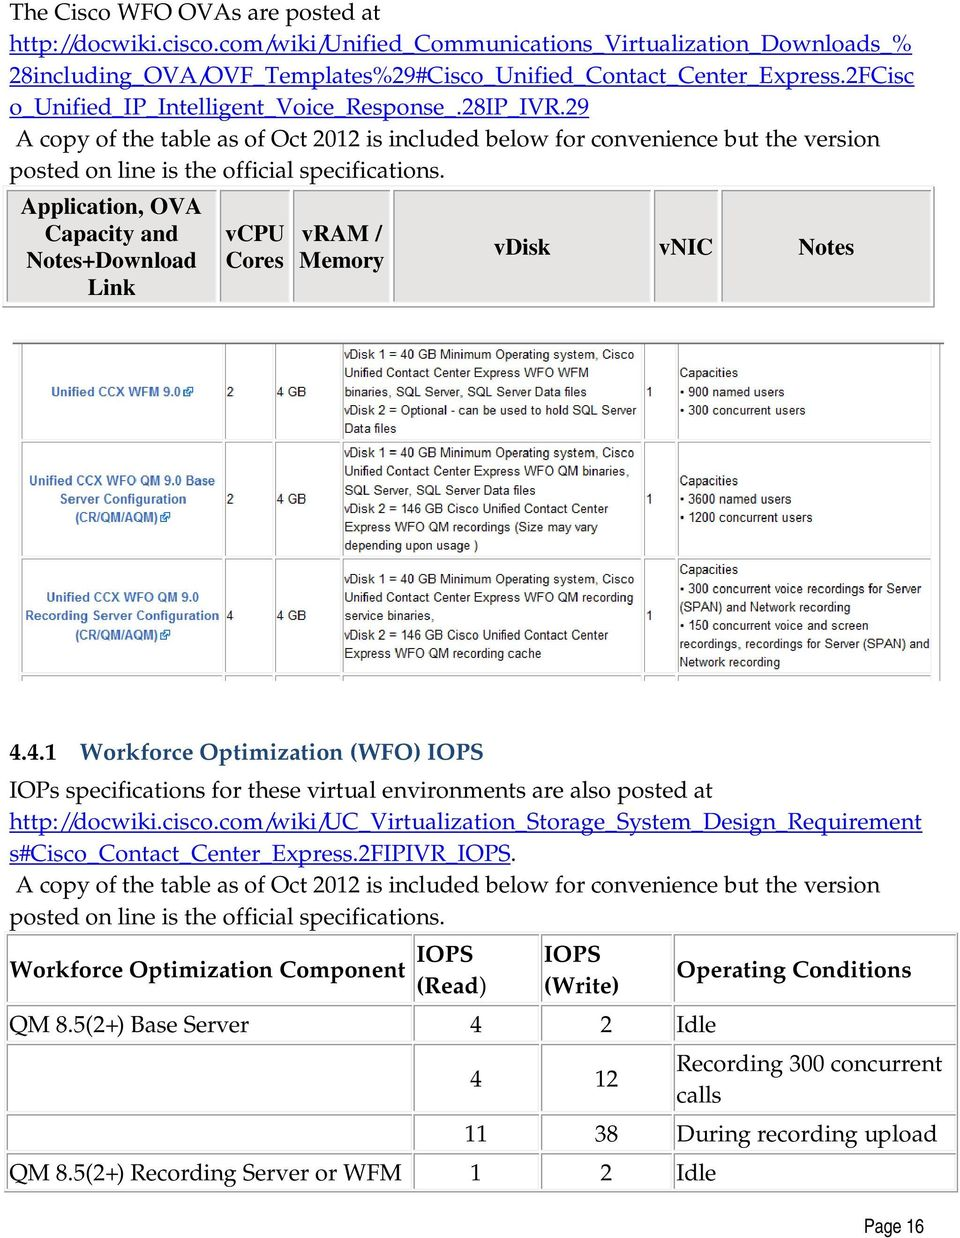 Cisco Workforce Optimization System Configuration Guide - PDF